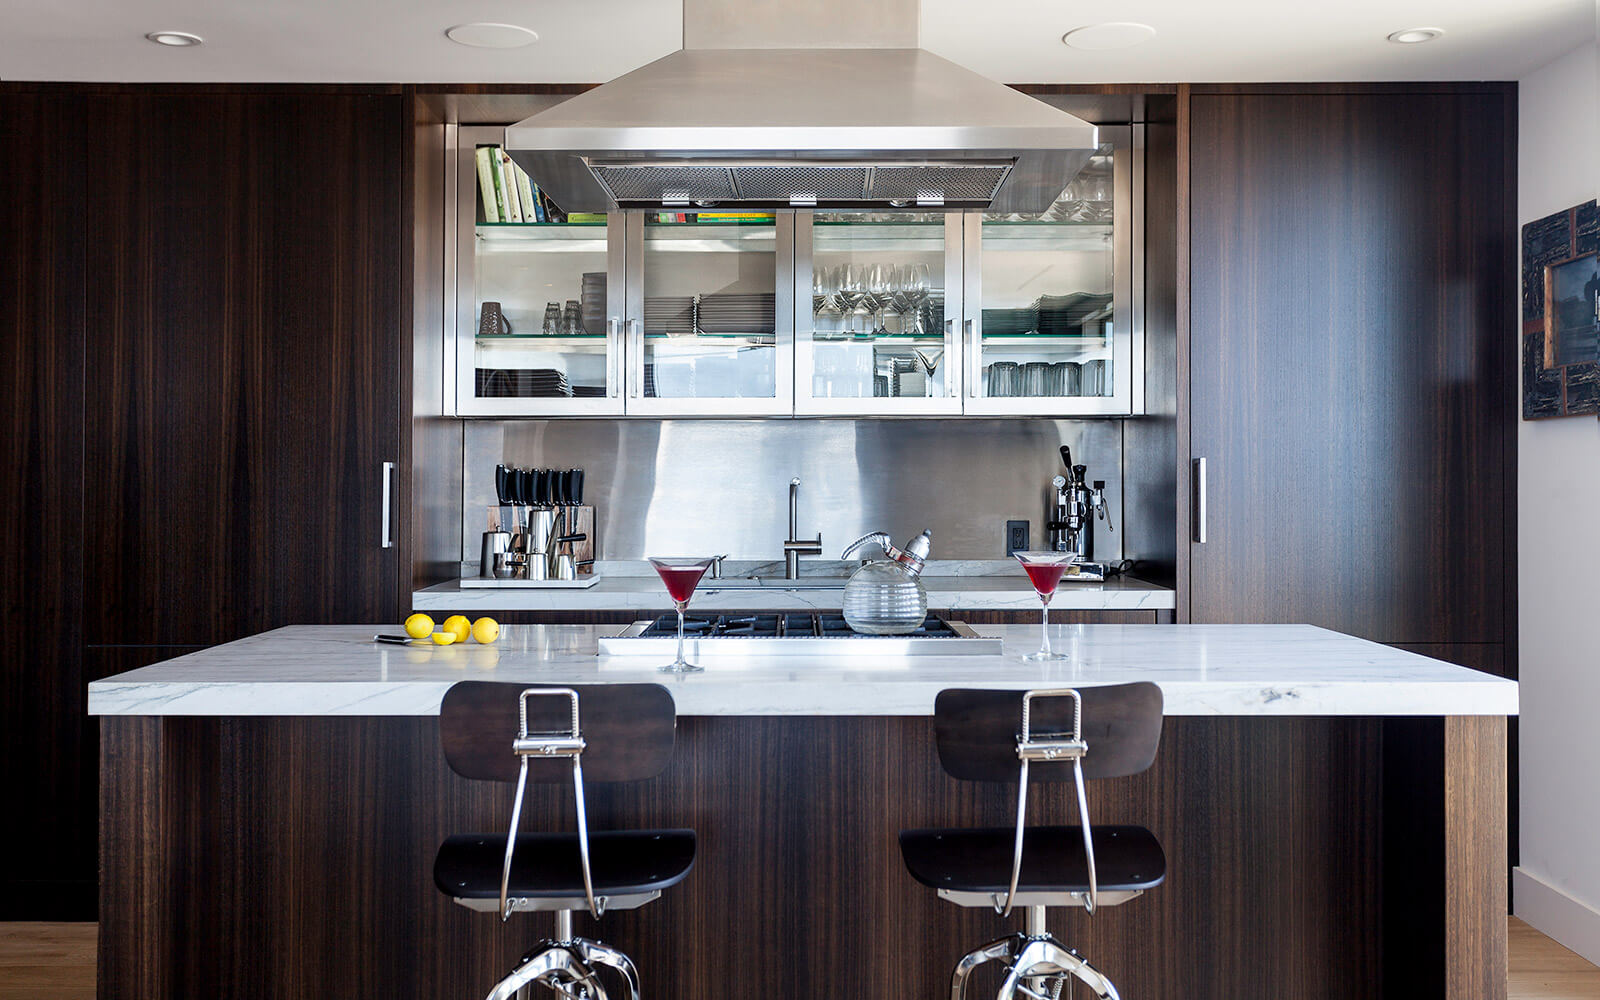 studio vara residential grant kitchen interior